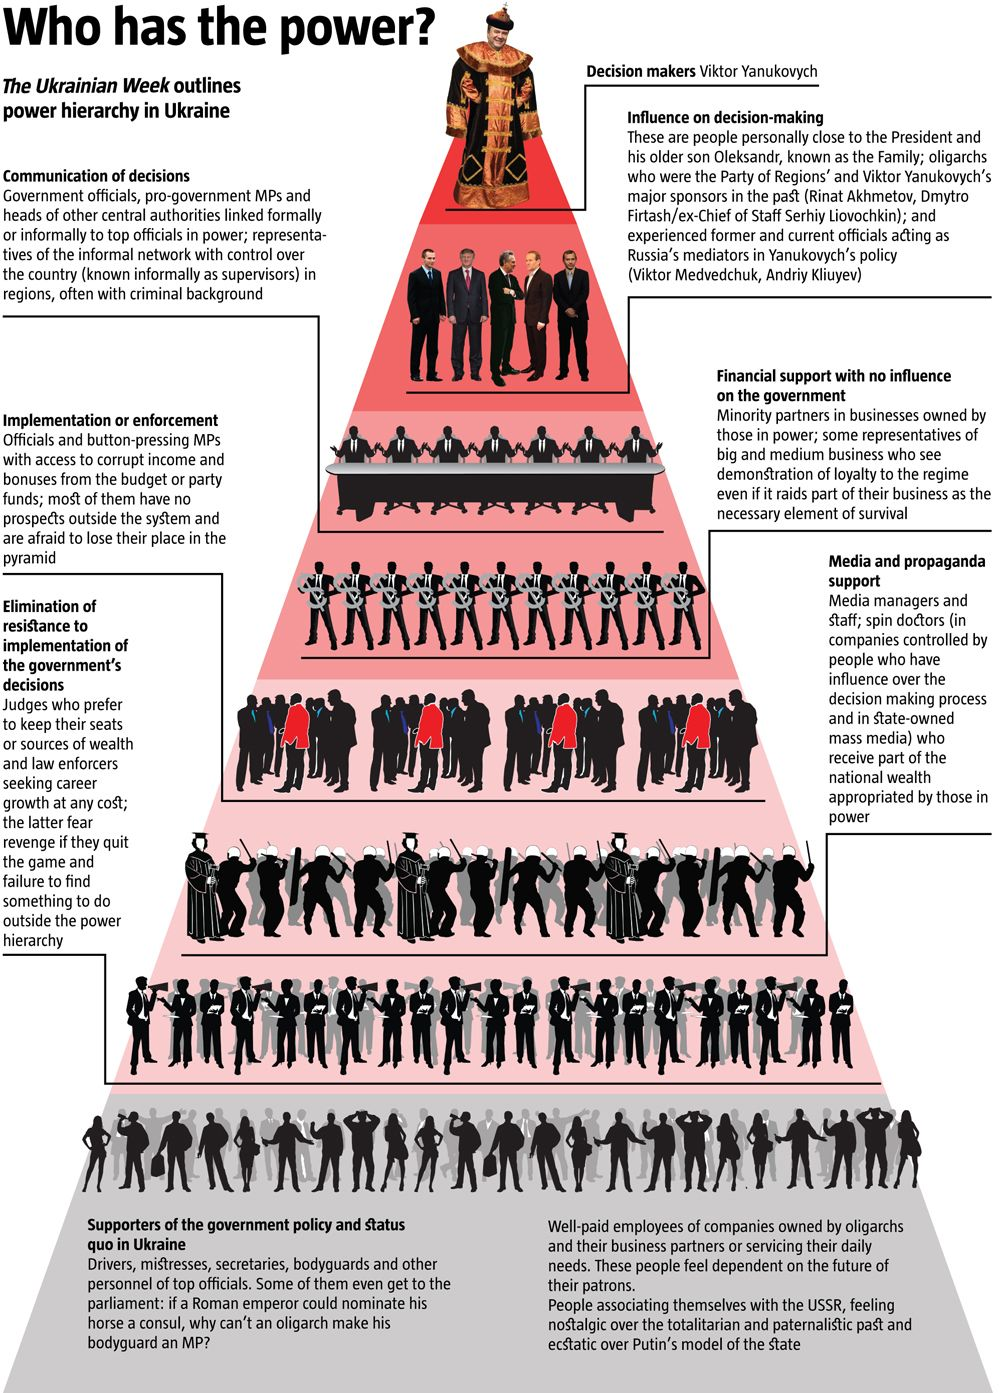 The Anatomy of Power - Who has the power in # Ukraine ...